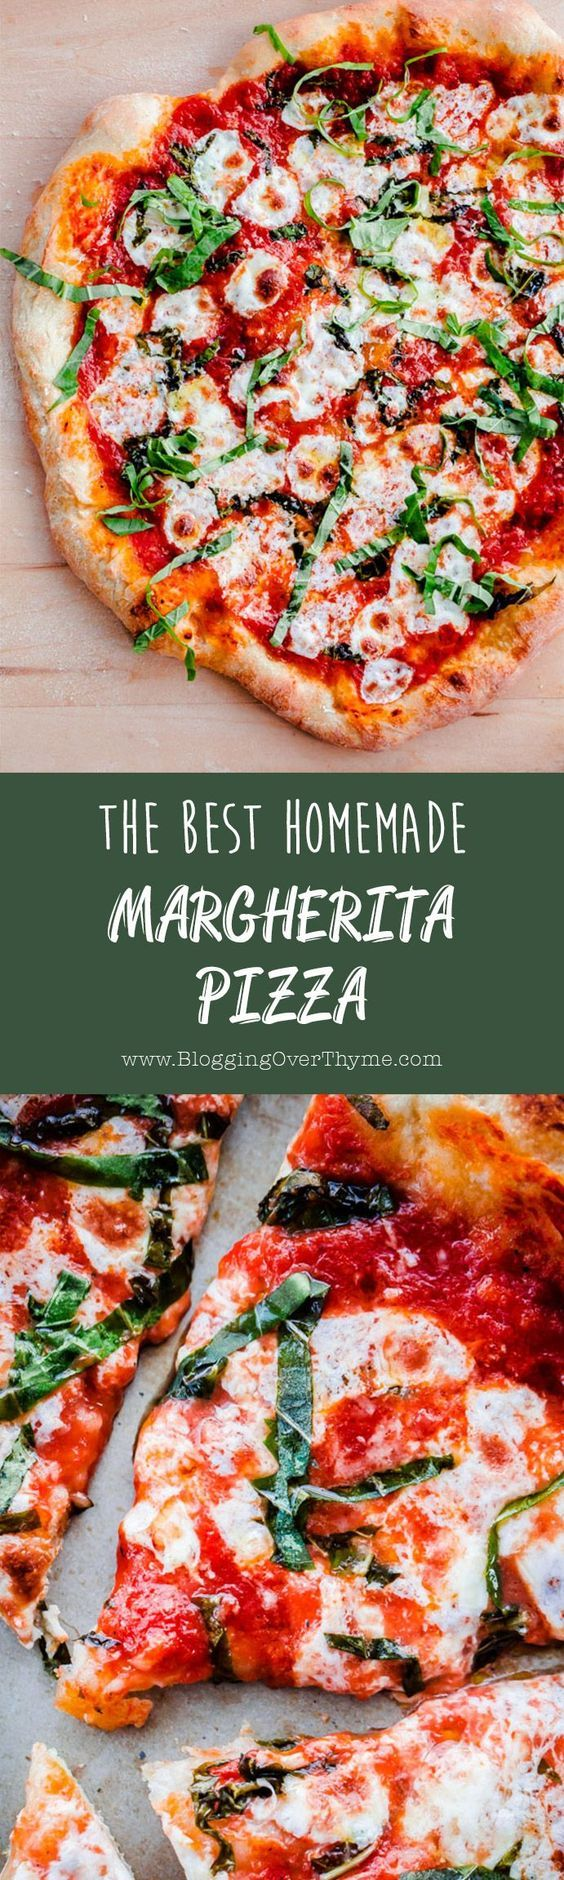 the best homemade margherita pizza made in a standard kitchen oven